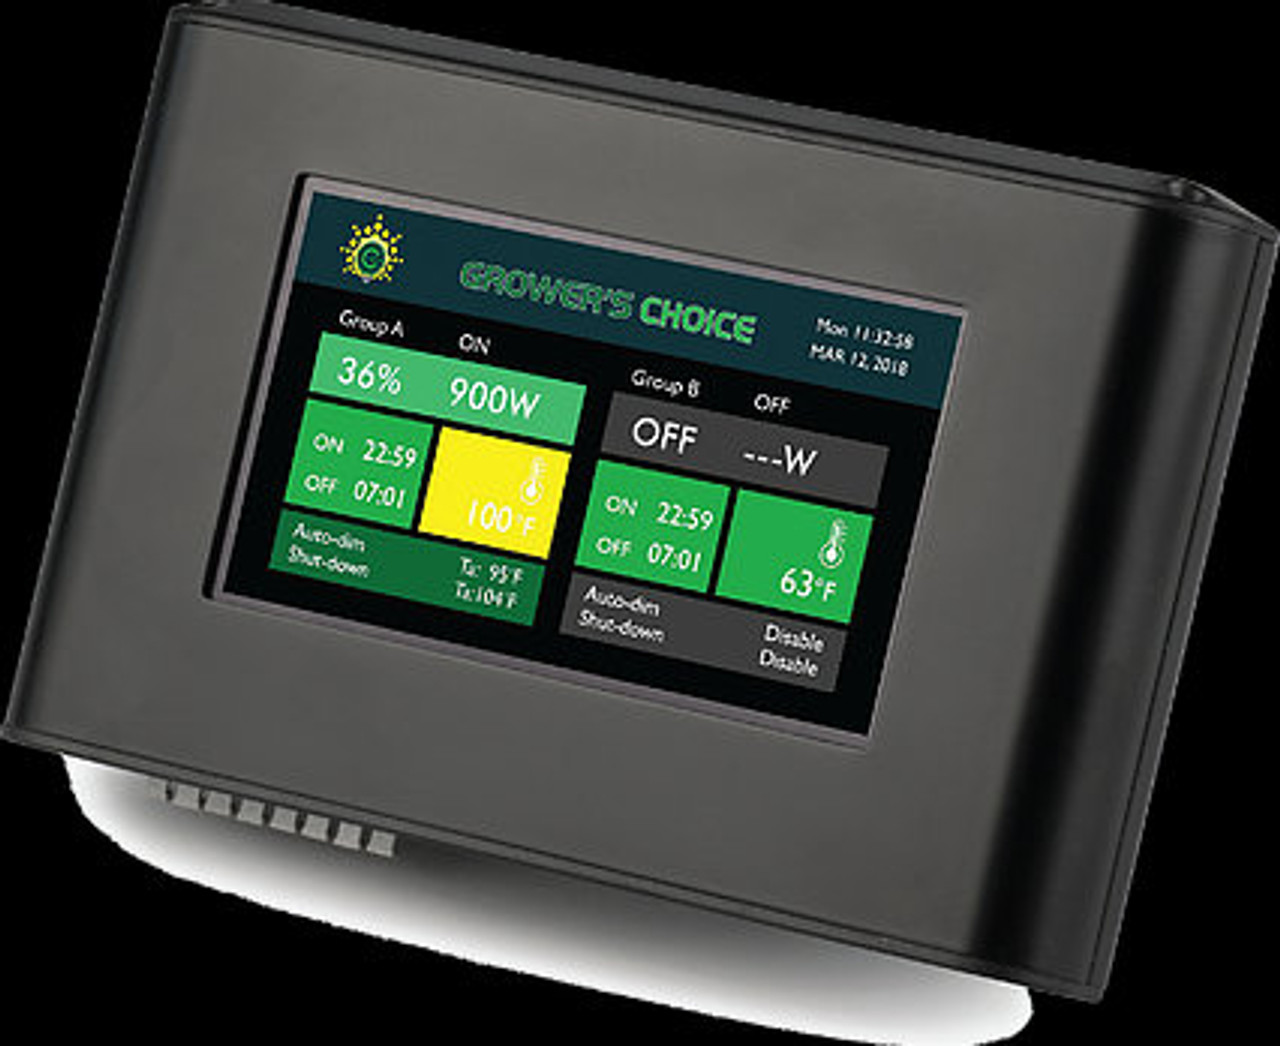 Grower's Choice Master Controller